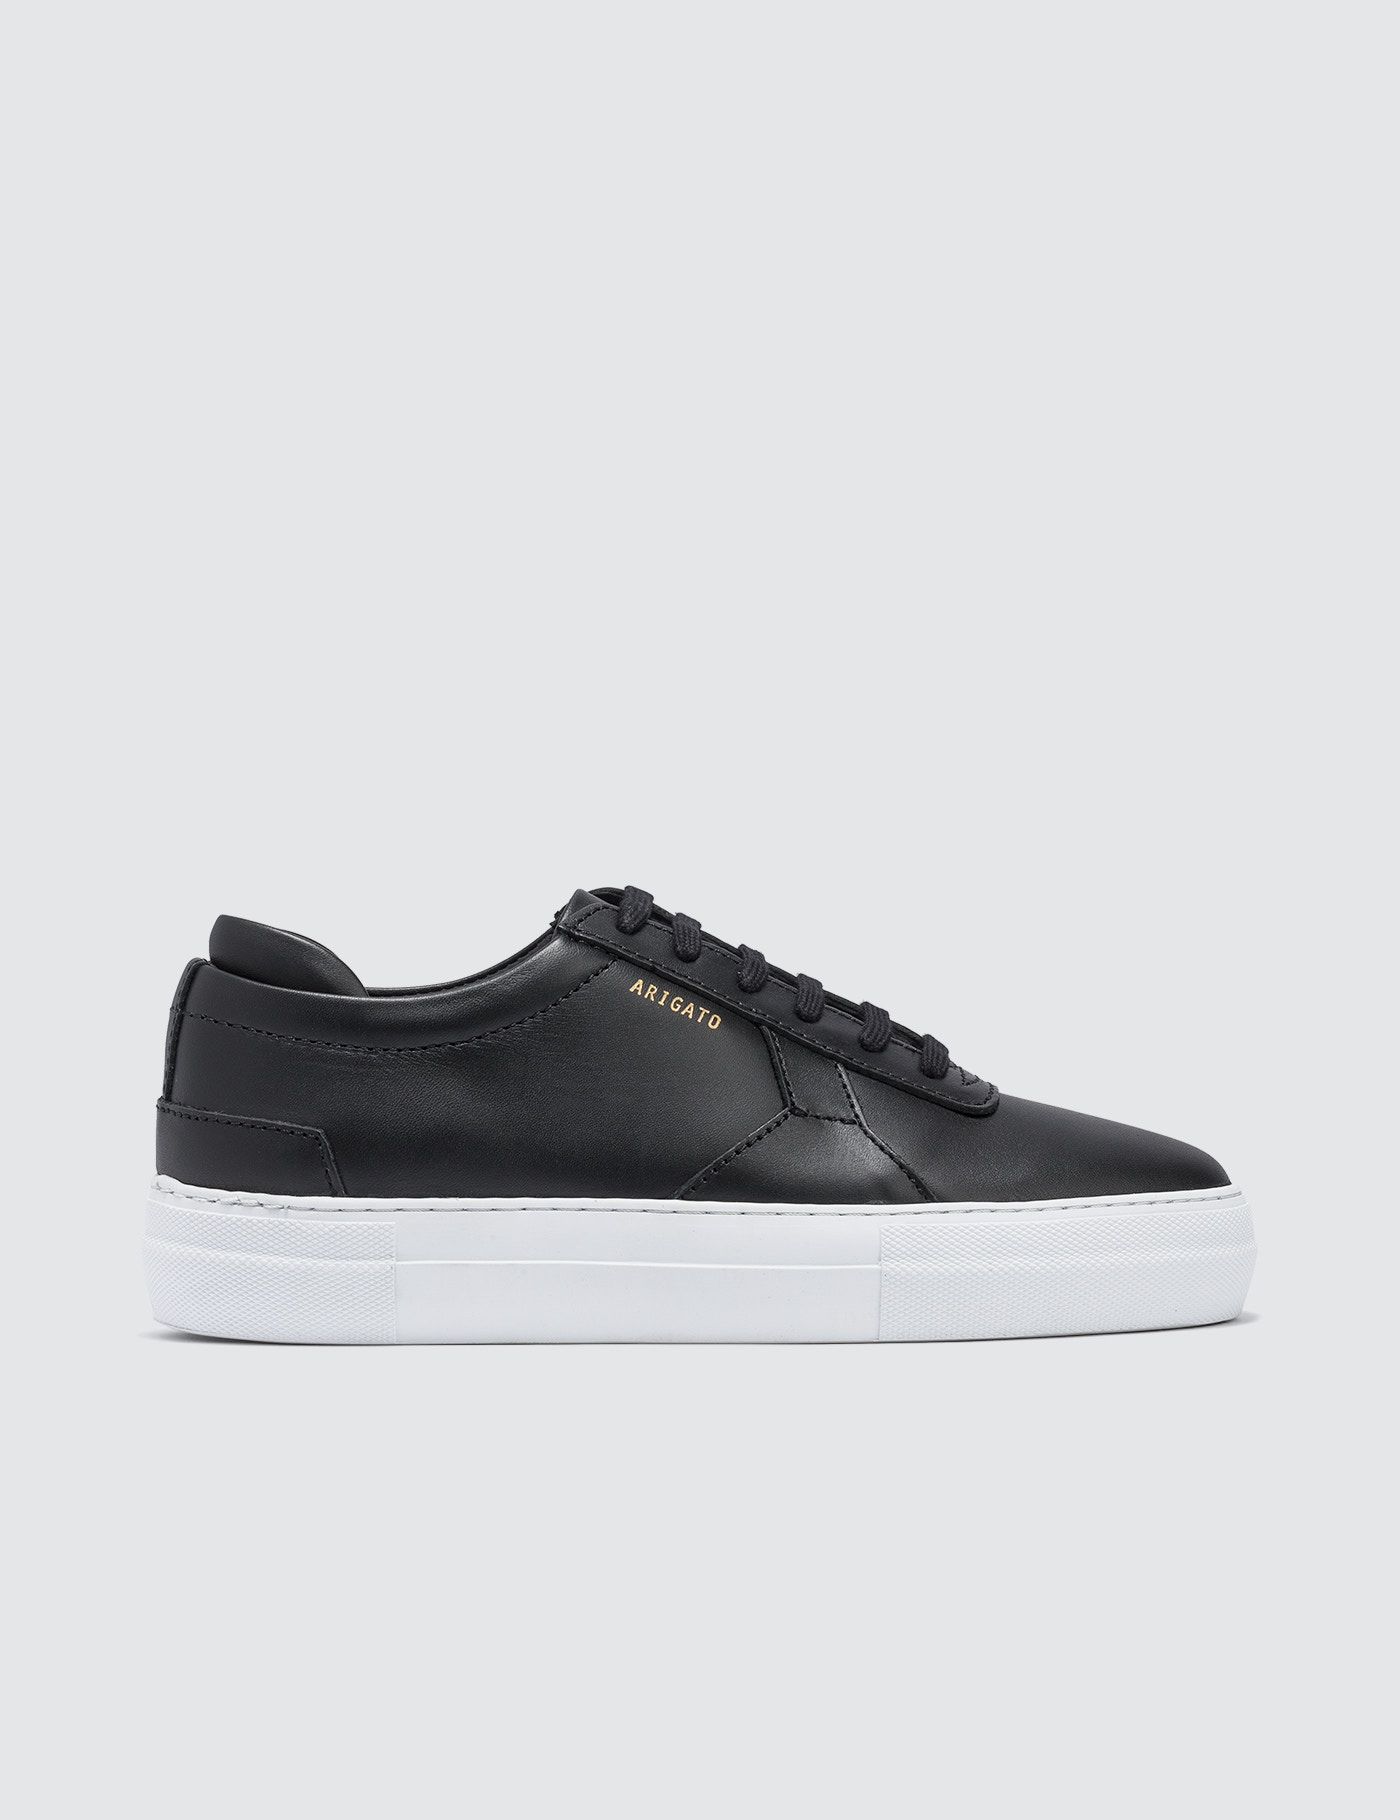 Axel Arigato Platform Leather Sneakers